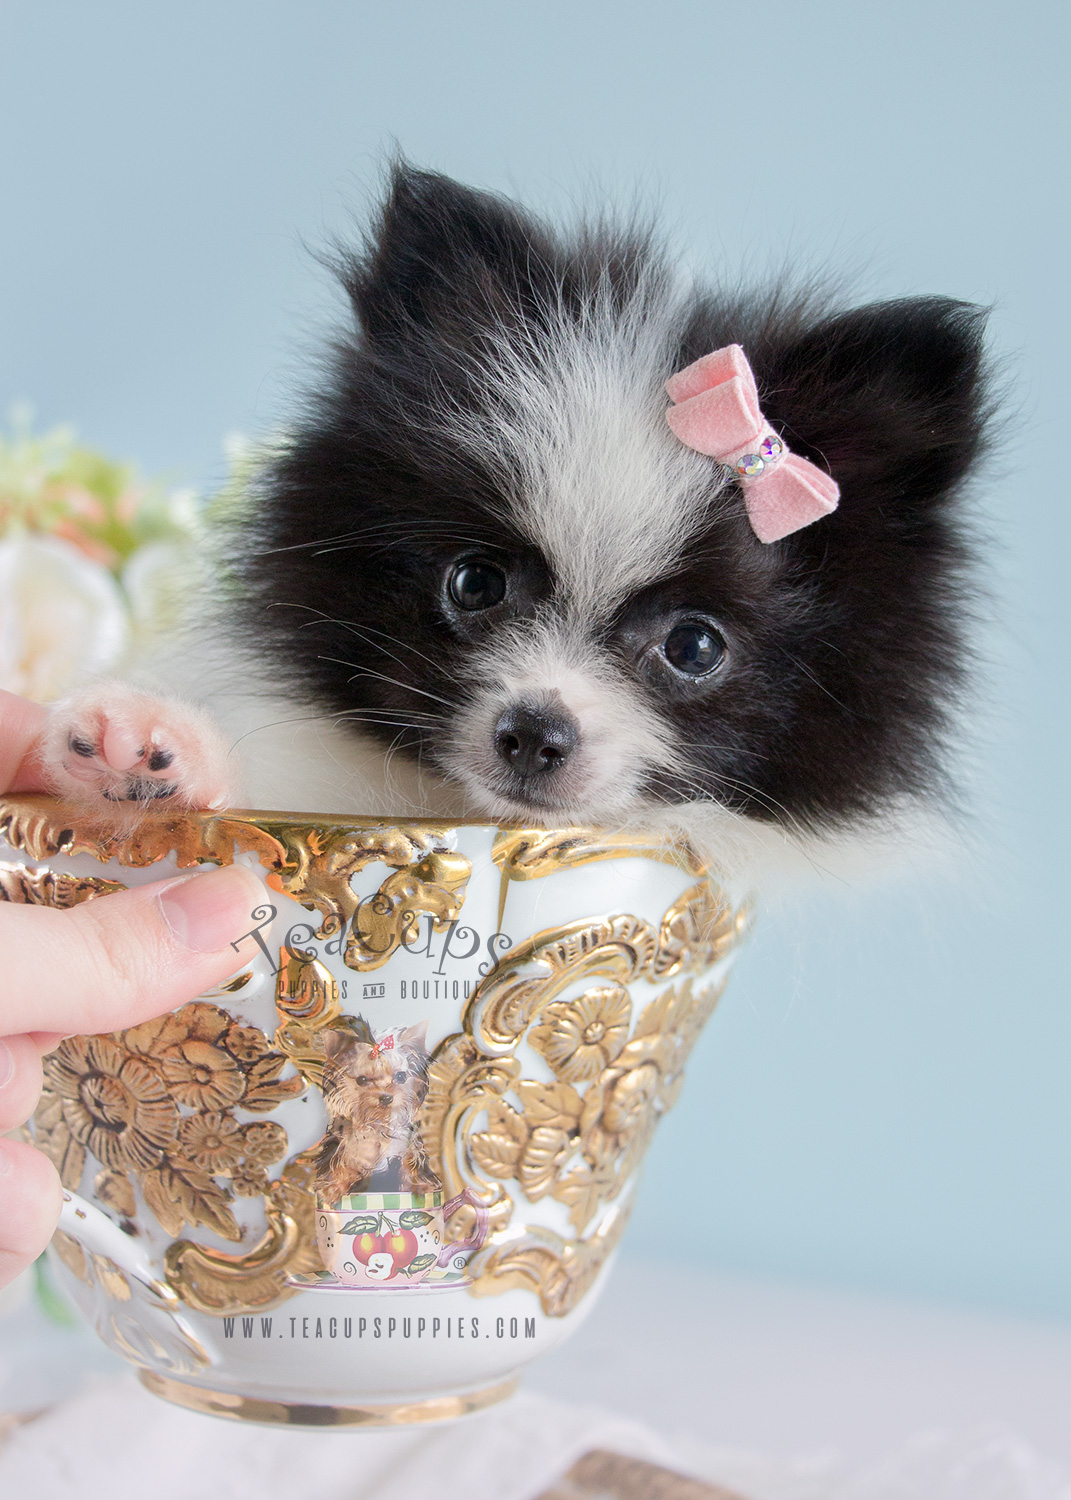 Maltese Puppies South Florida | Teacups, Puppies & Boutique